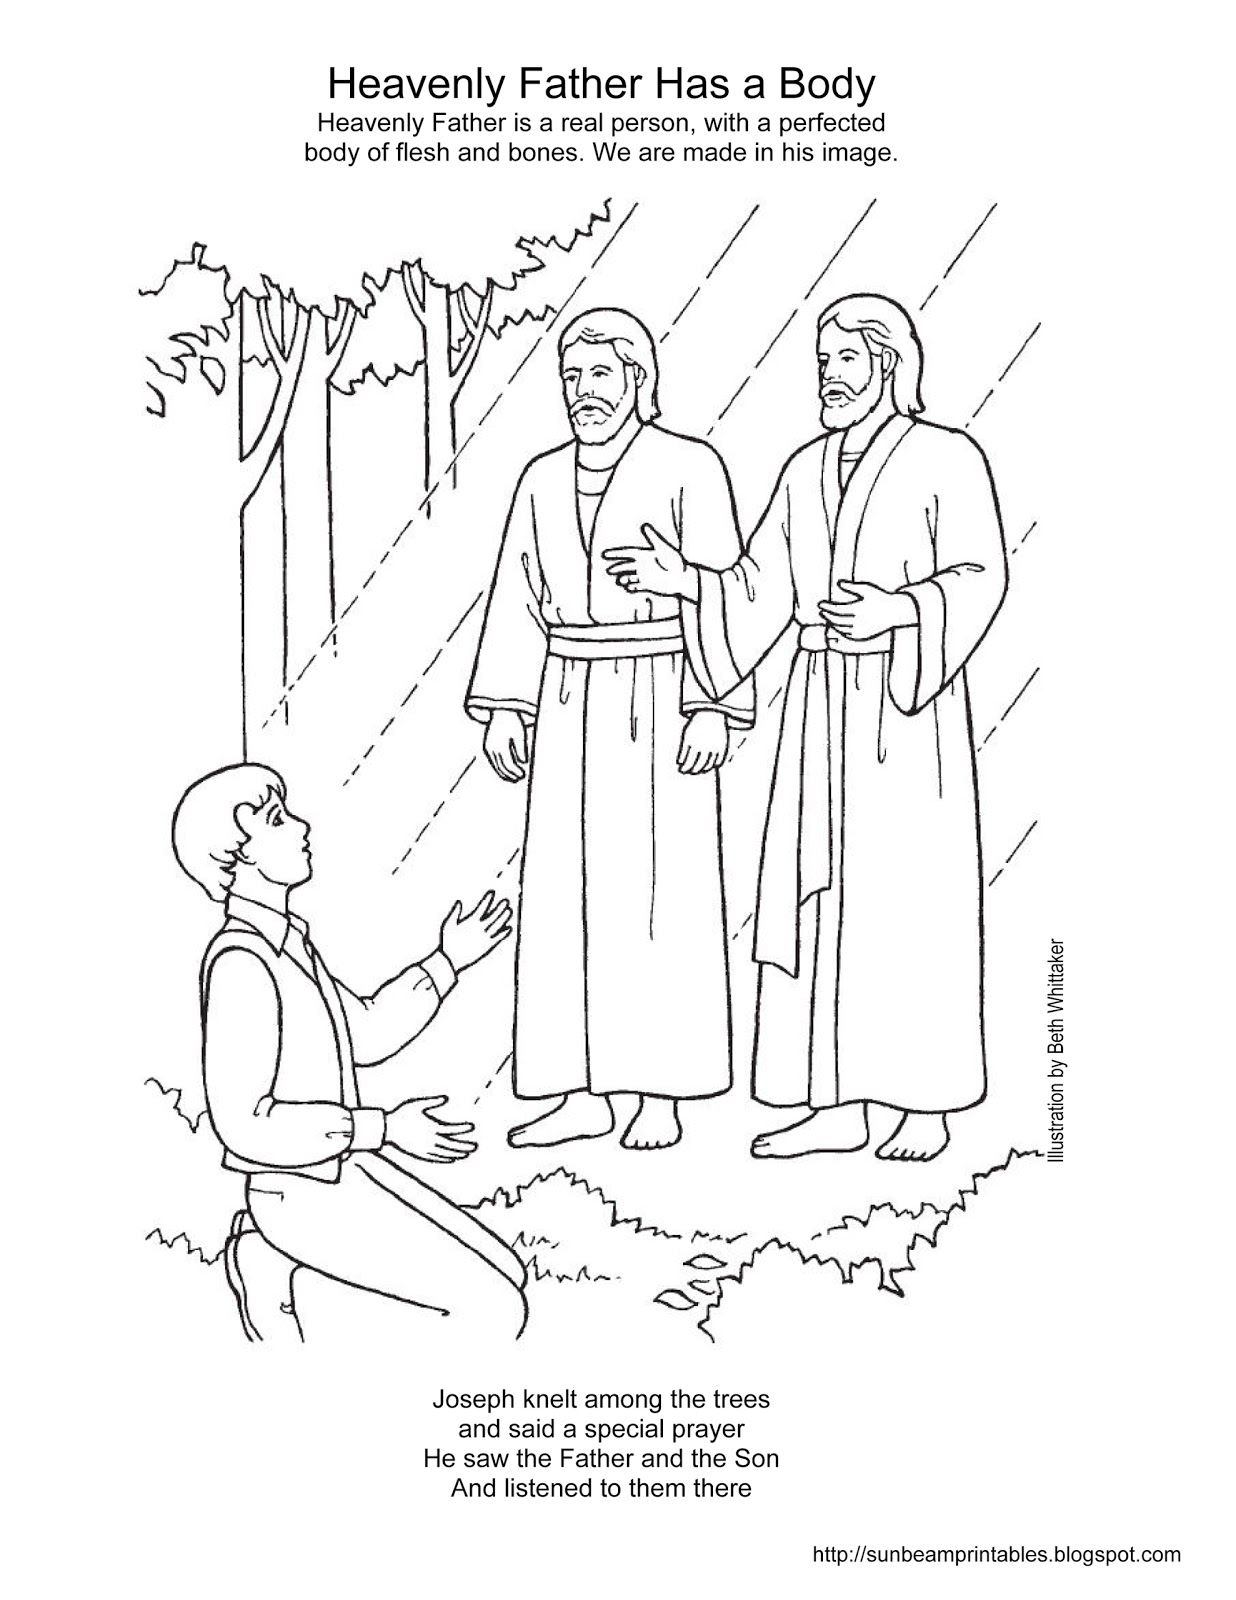 Sunbeam Printables Coloring Page For Lesson 2 Heavenly